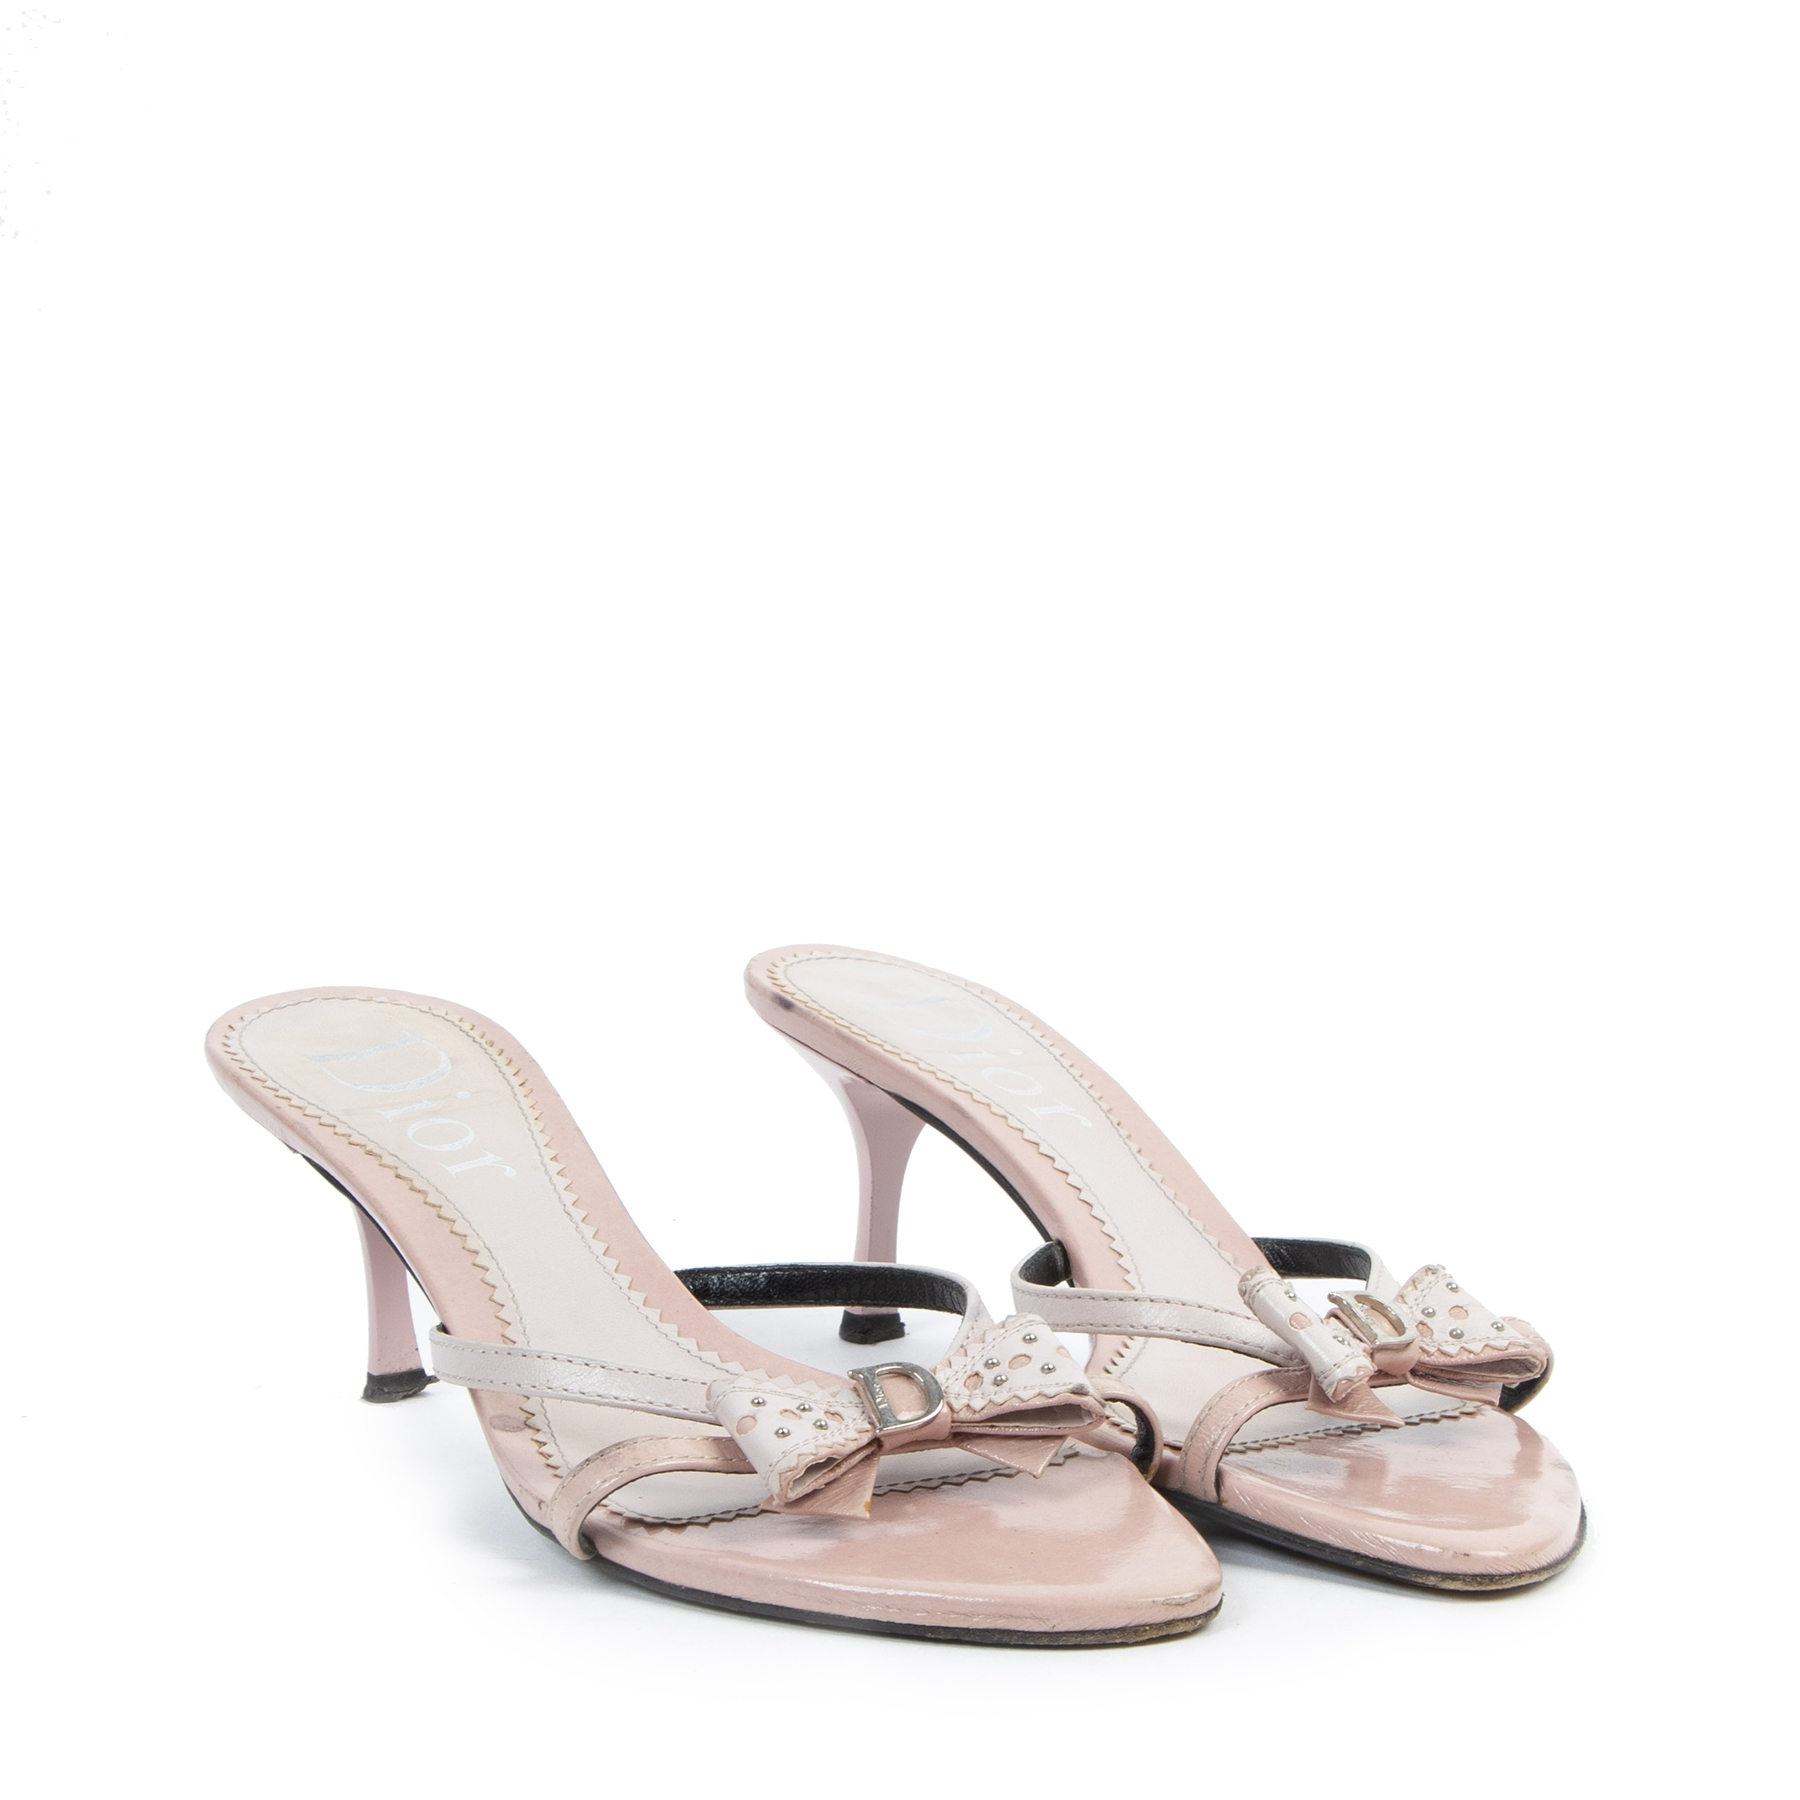 Authentic secondhand Dior Pink Sandal Mules - size 40 designer bags fashion luxury vintage webshop safe secure online shopping worldwide shipping designer high end brands